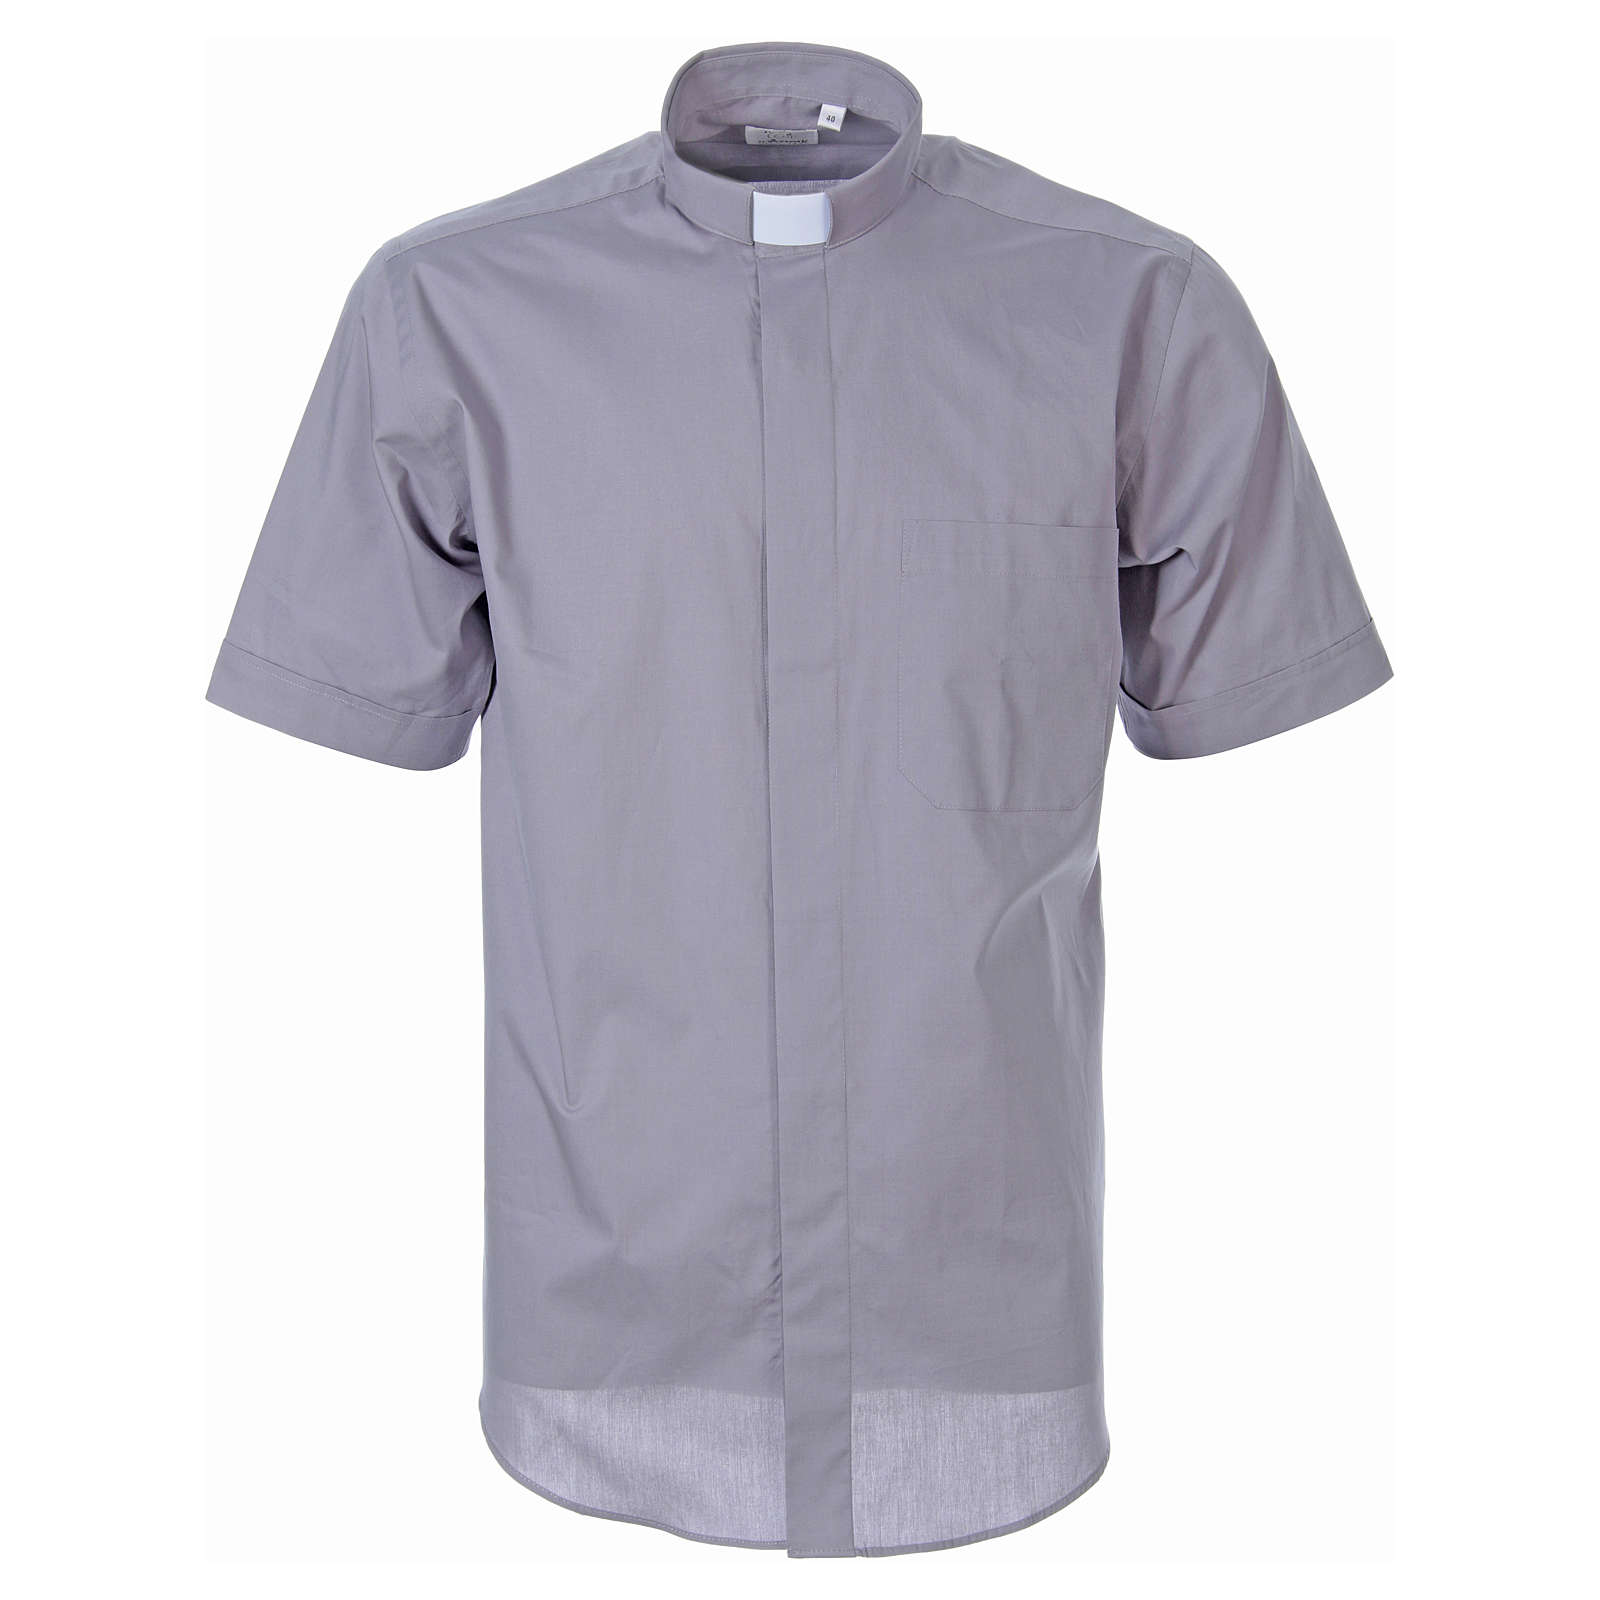 STOCK Light grey short sleeve clerical shirt, poplin 4